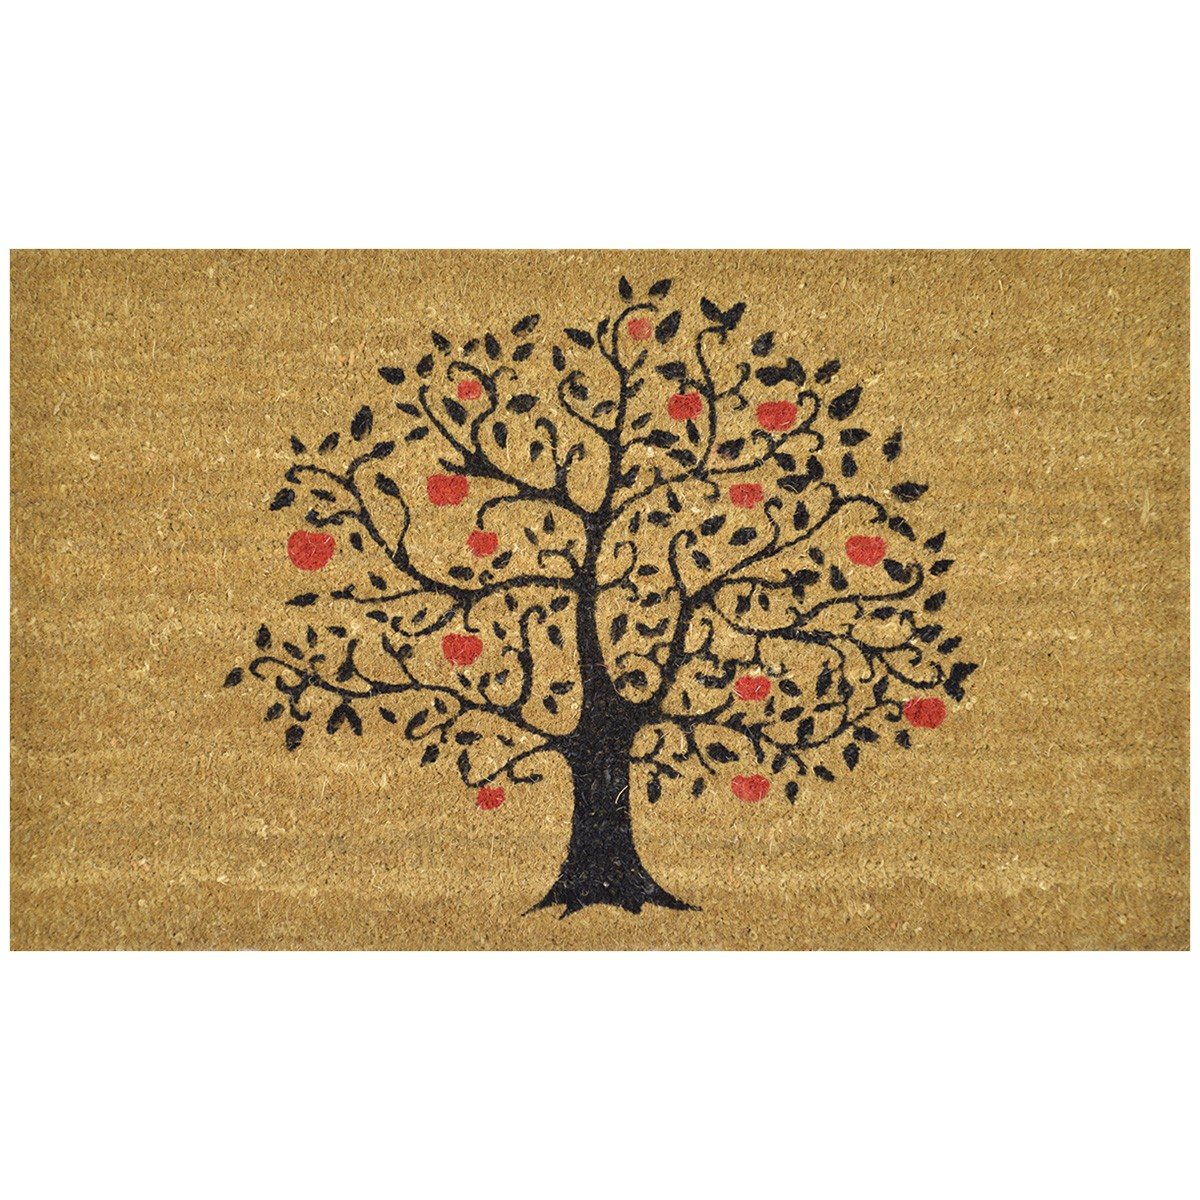 Apple Tree Coir Doormat, 75x45cm